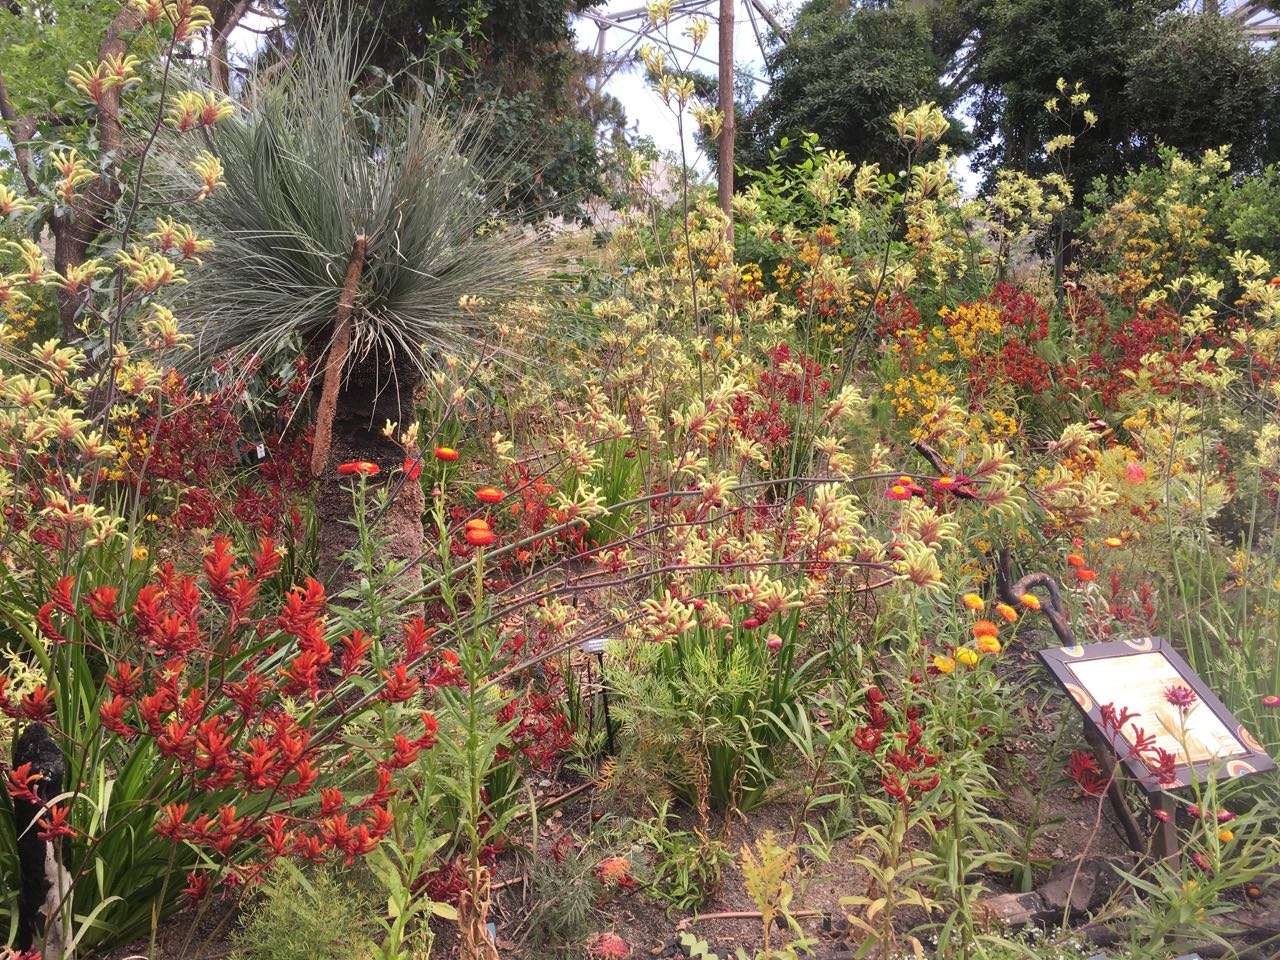 Colourful flowers in the Western Australia Garden